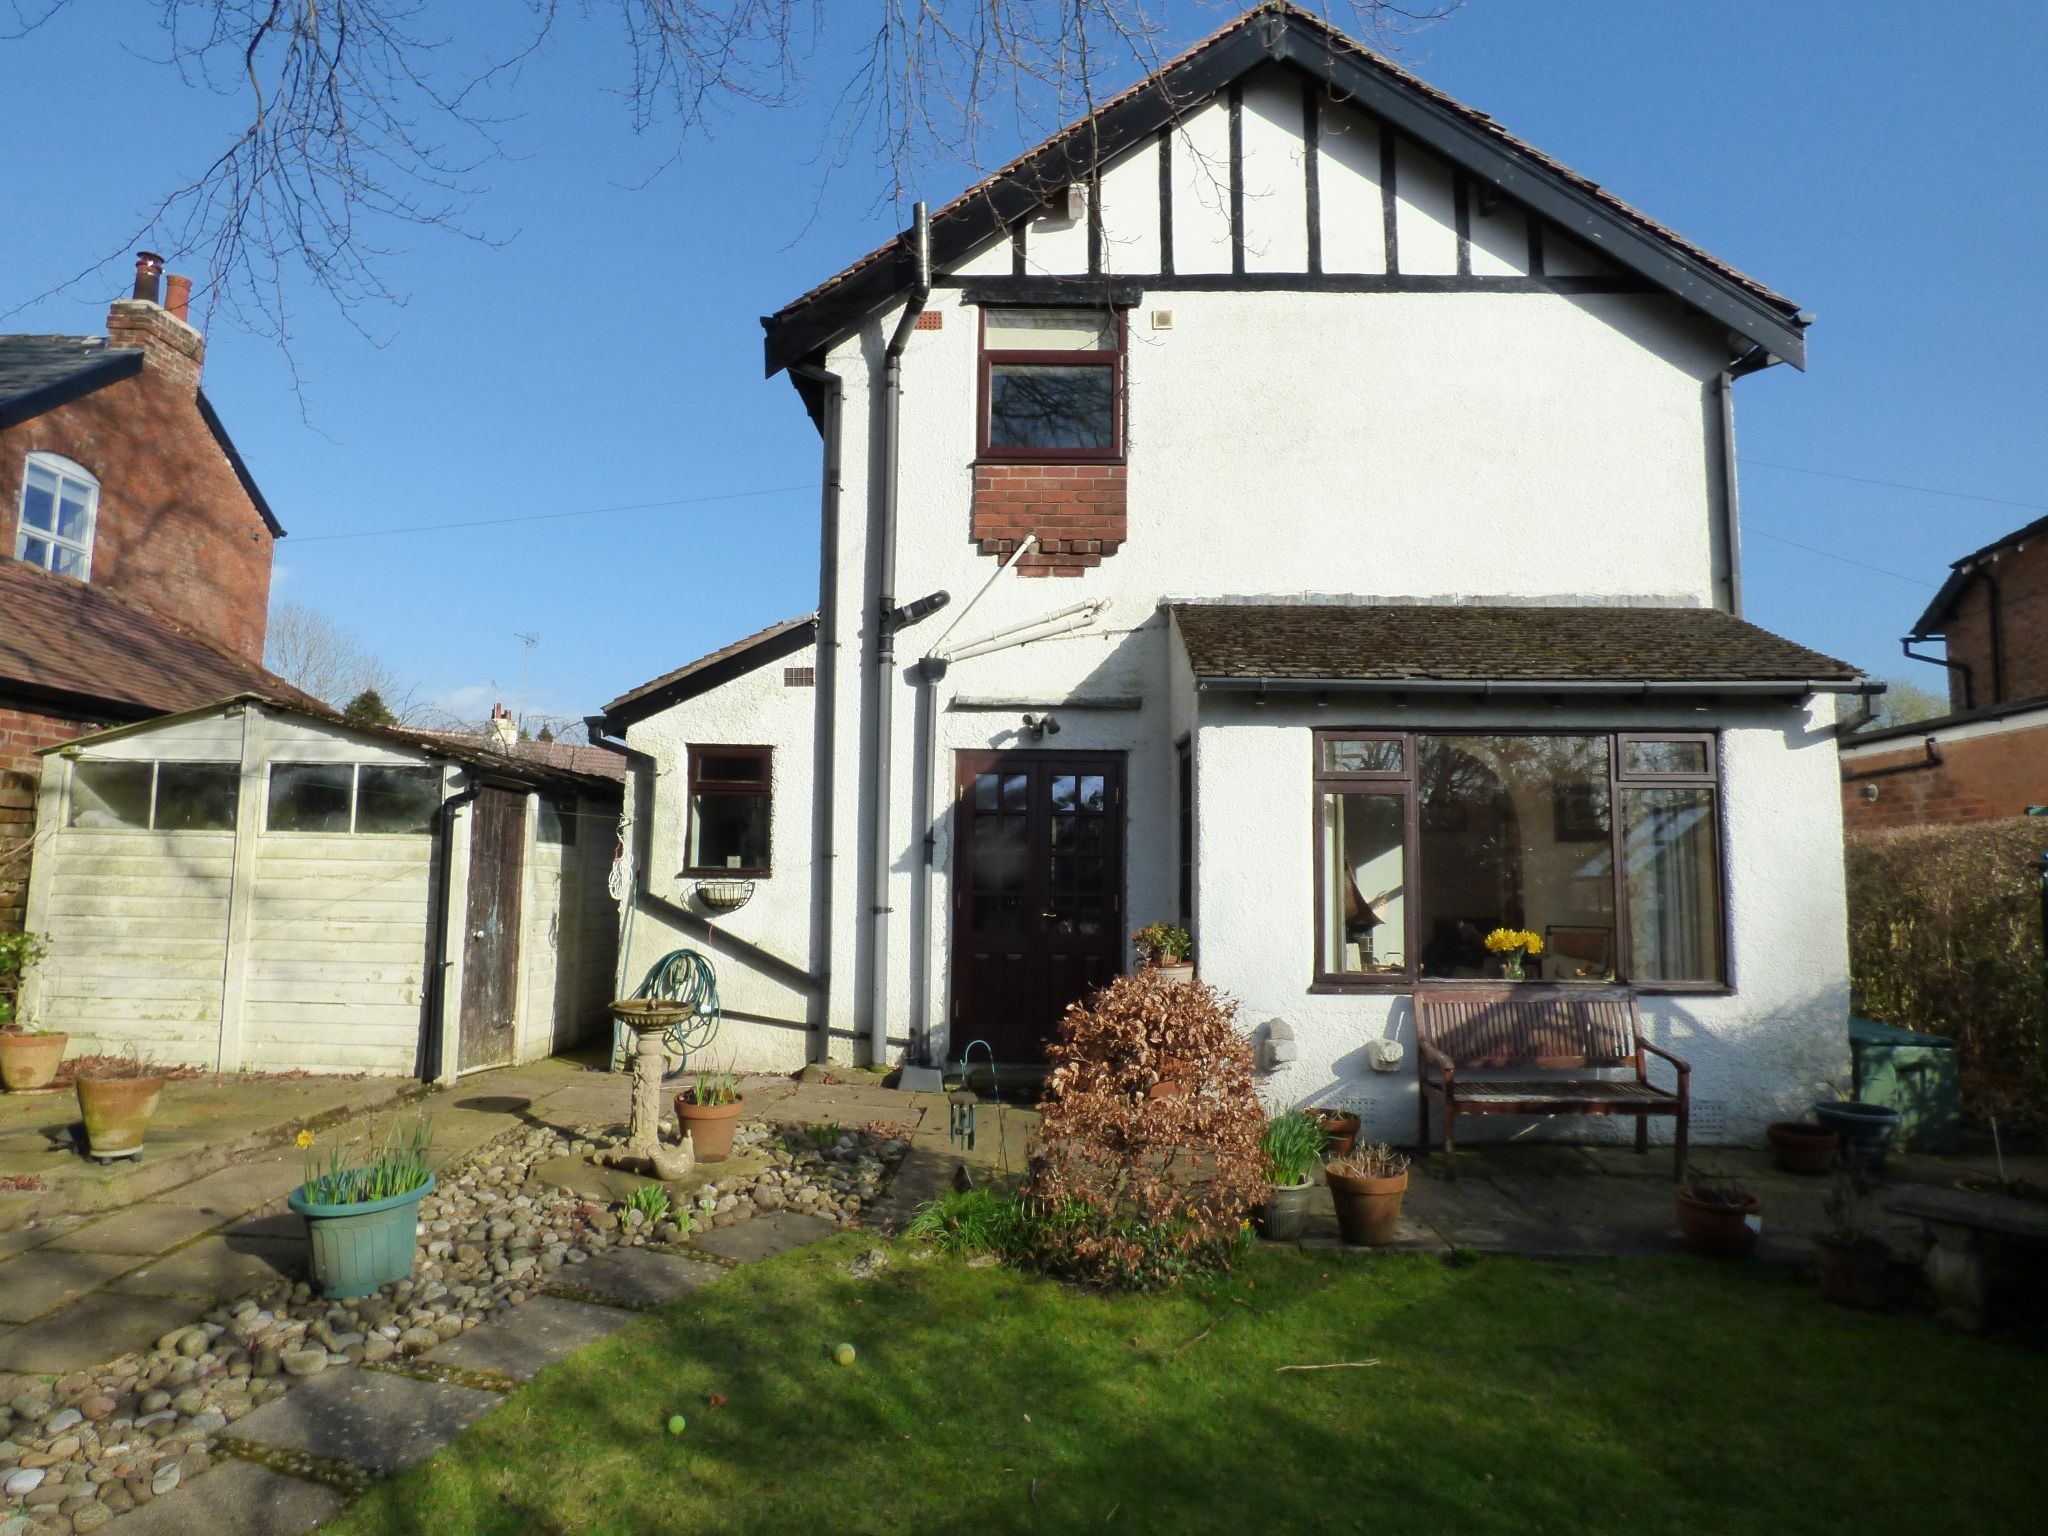 3 Bedroom Detached House For Sale - Rear External